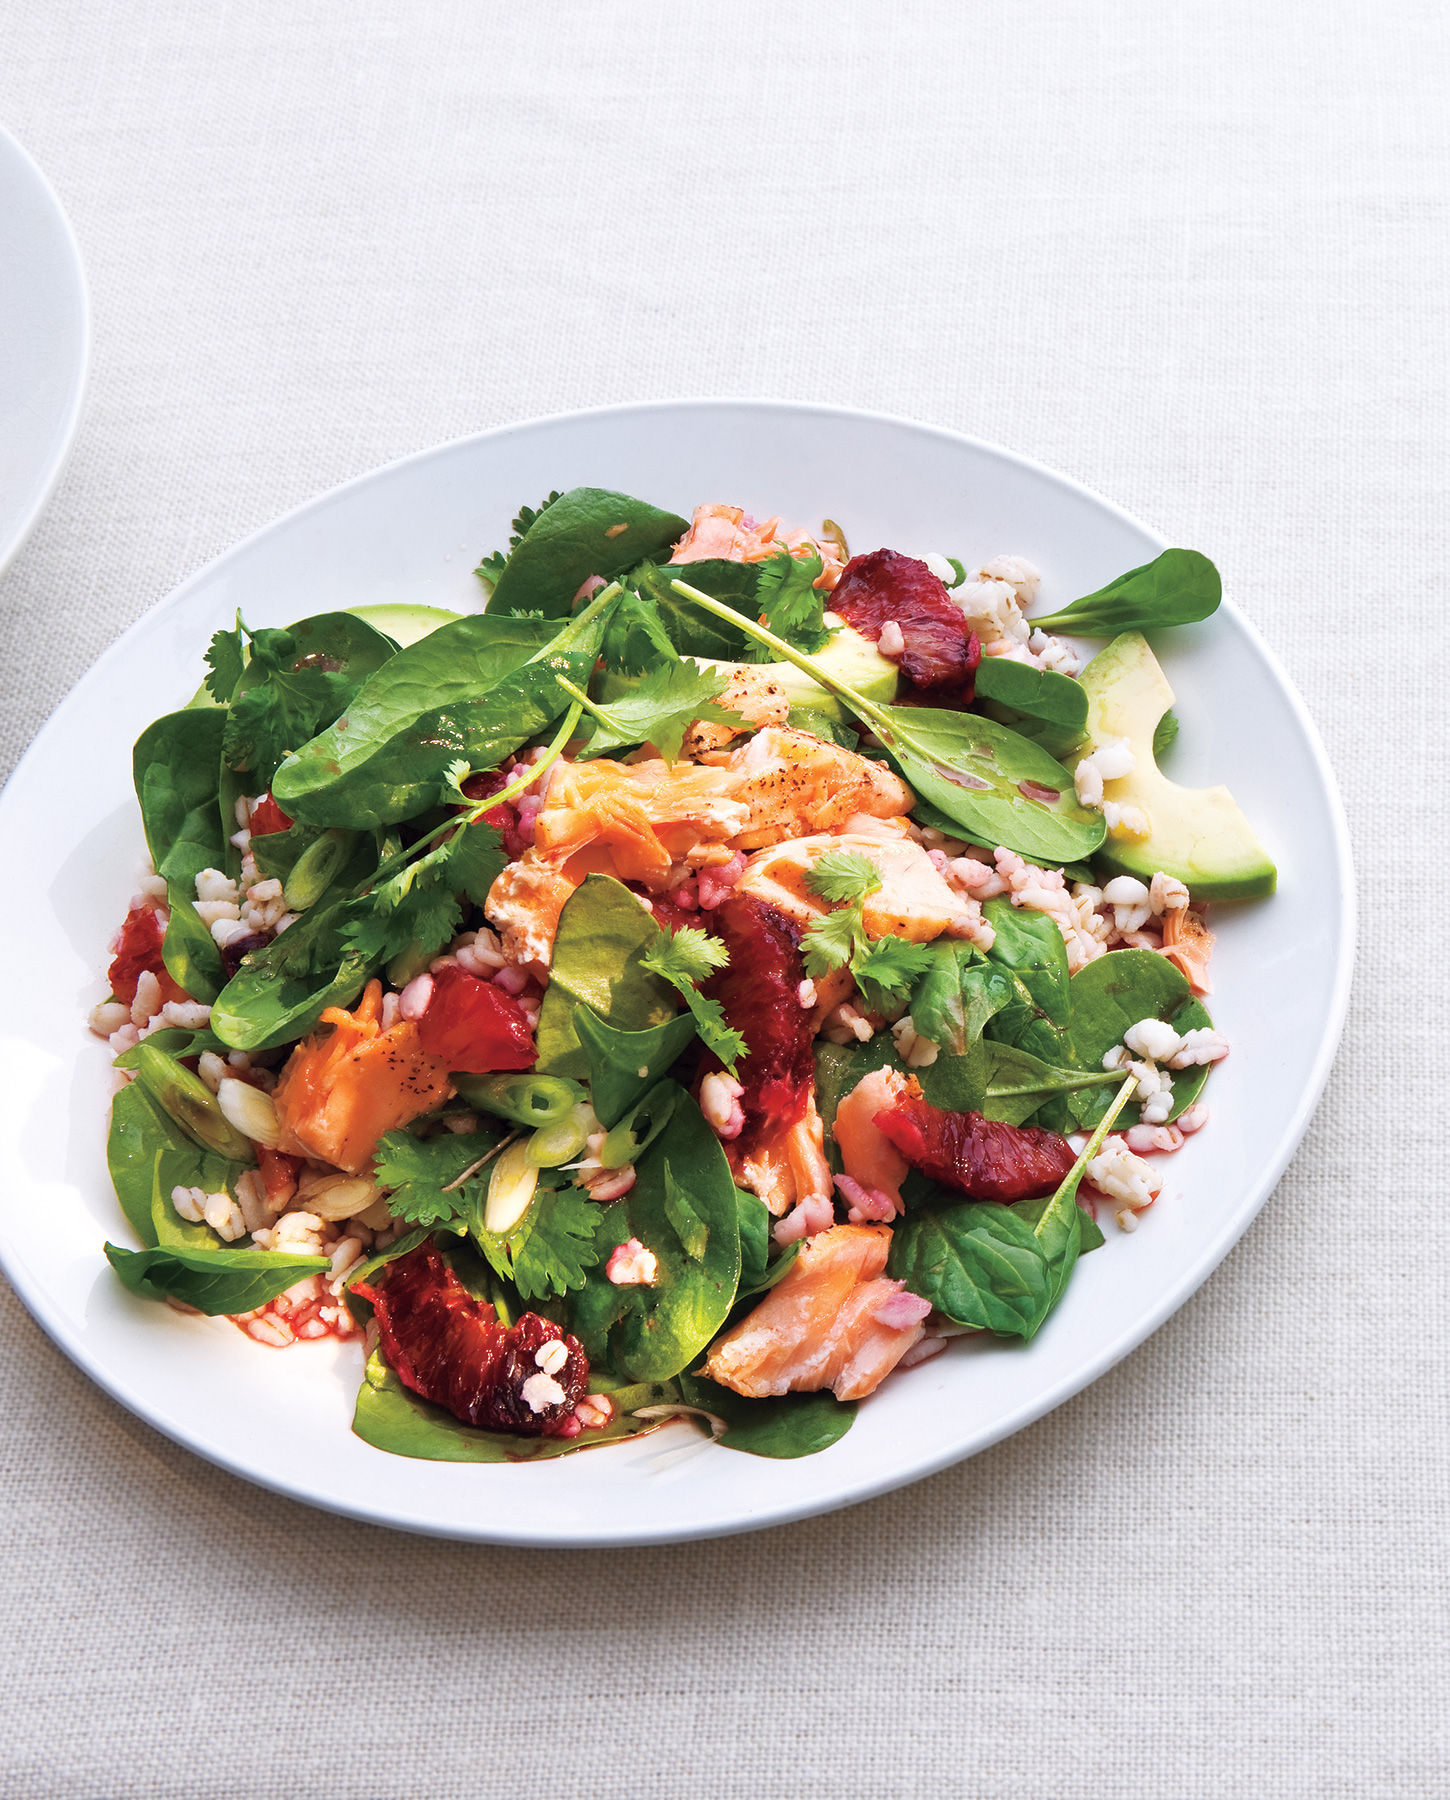 Spinach Salad With Salmon, Barley and Oranges